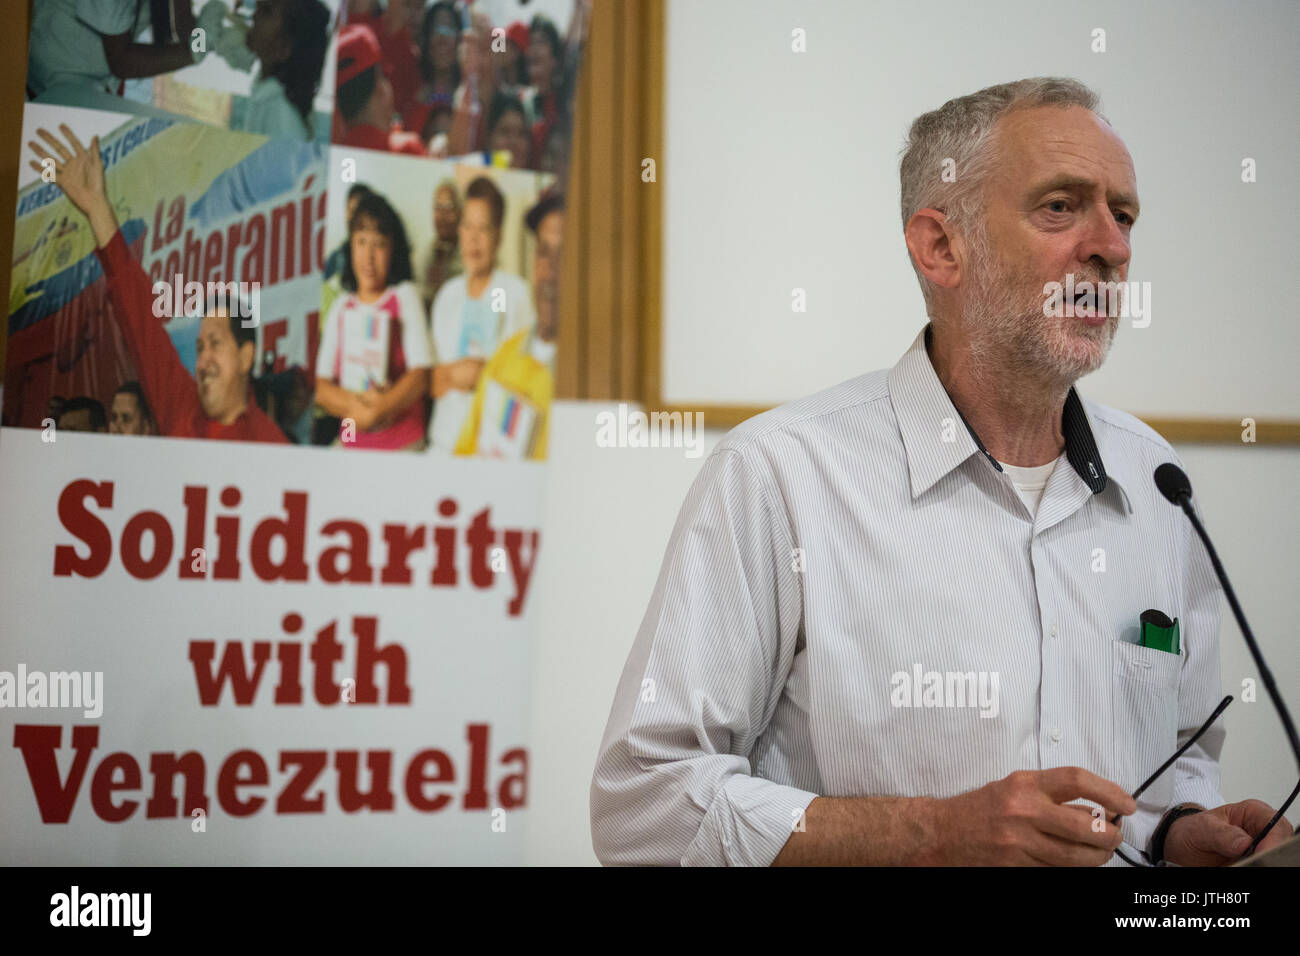 London, UK. 4th June, 2015. Jeremy Corbyn MP, candidate for the Labour Party leadership, addresses the Rally for Venezuela in London in celebration of 10 years of the Venezuela Solidarity Campaign. Credit: Mark Kerrison/Alamy Live News - Stock Image